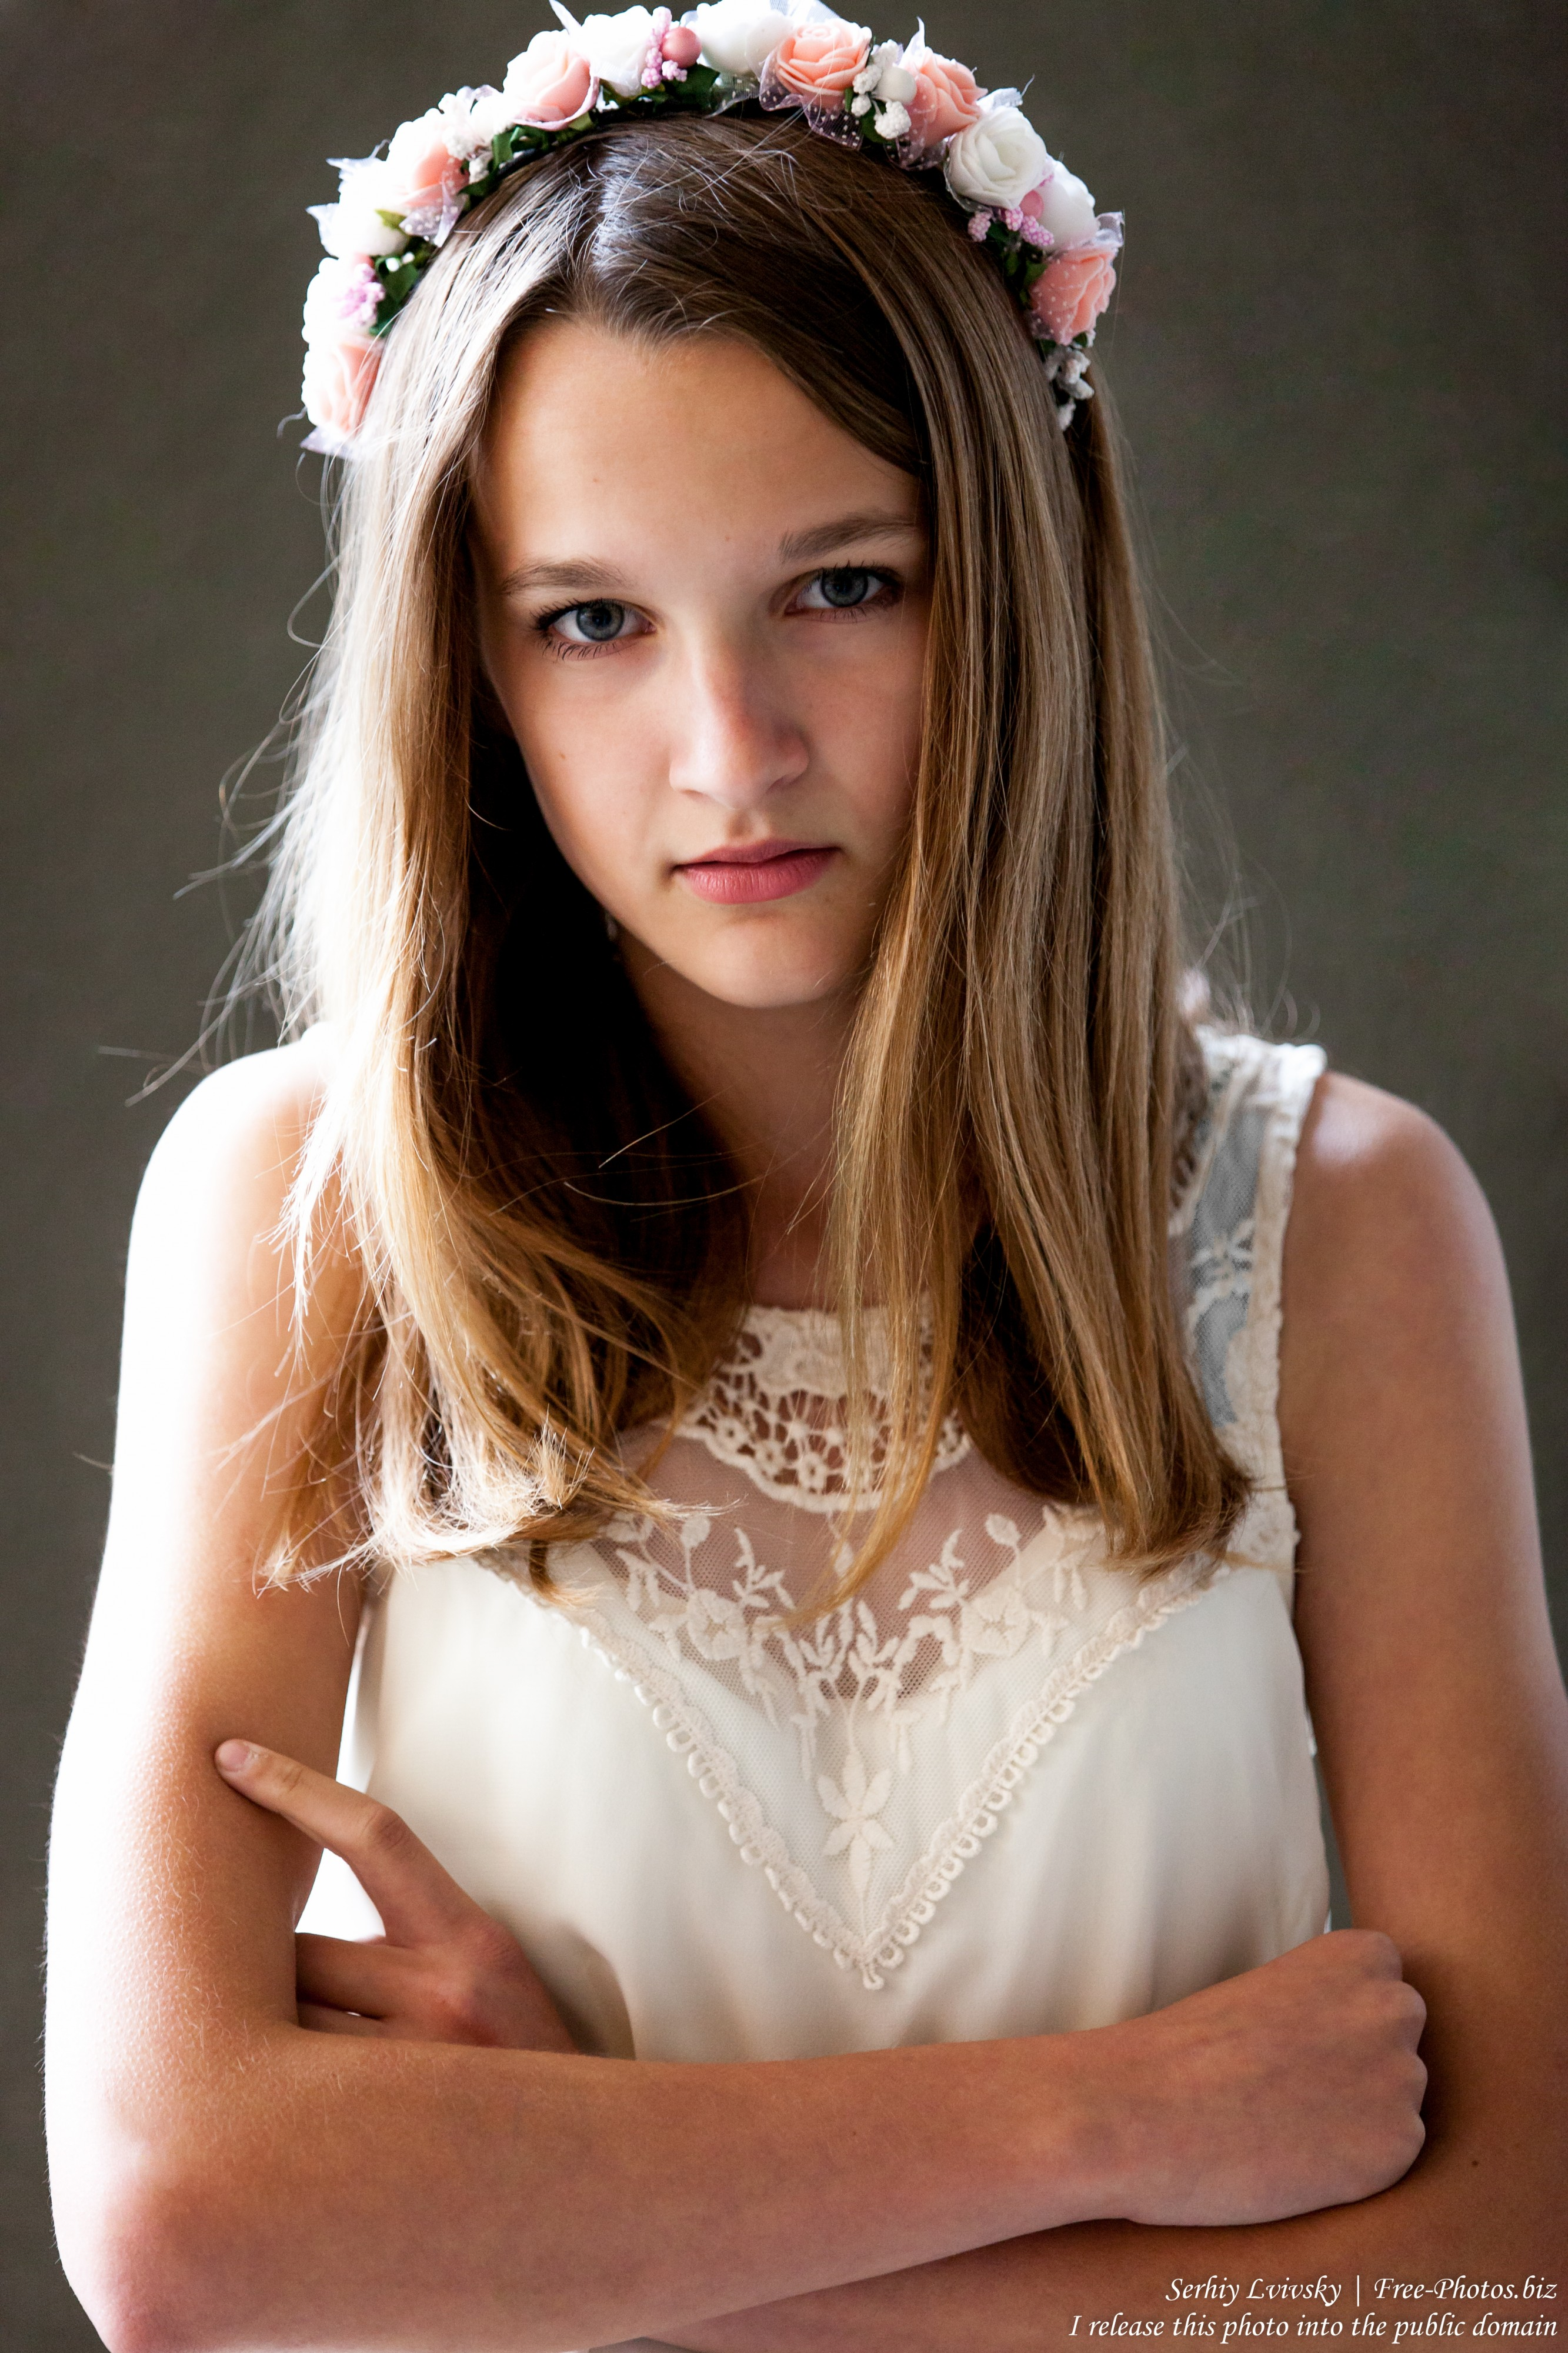 a 13-year-old Catholic girl in a white dress photographed in June 2015, picture 5